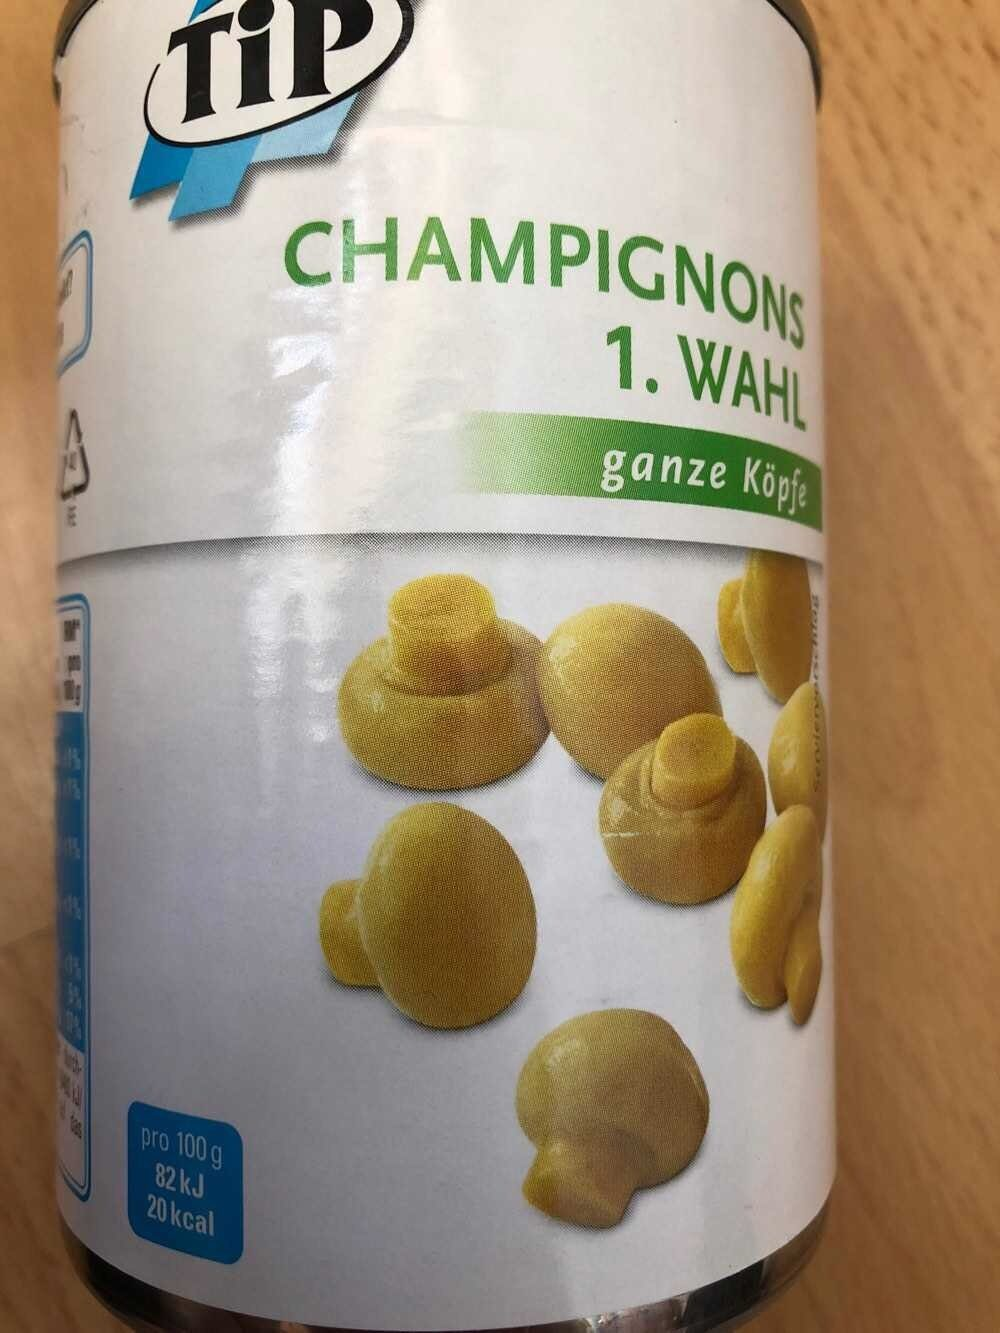 Champignons 1. Wahl - Product